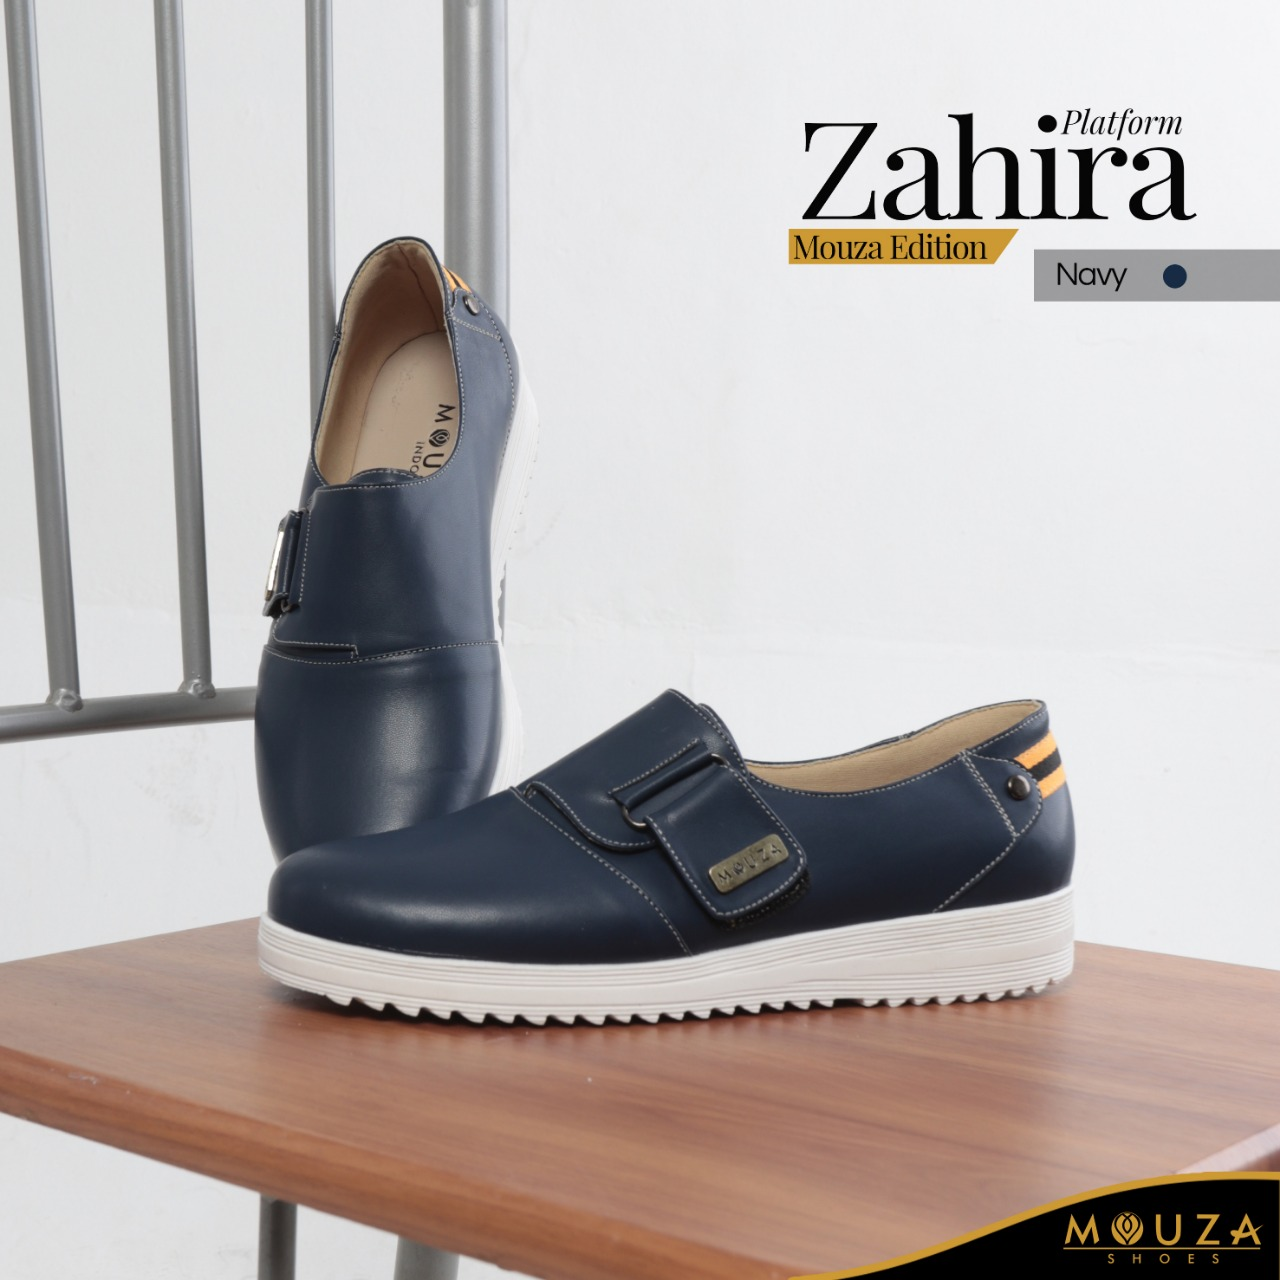 Platform Zahira By Mouza Shoes